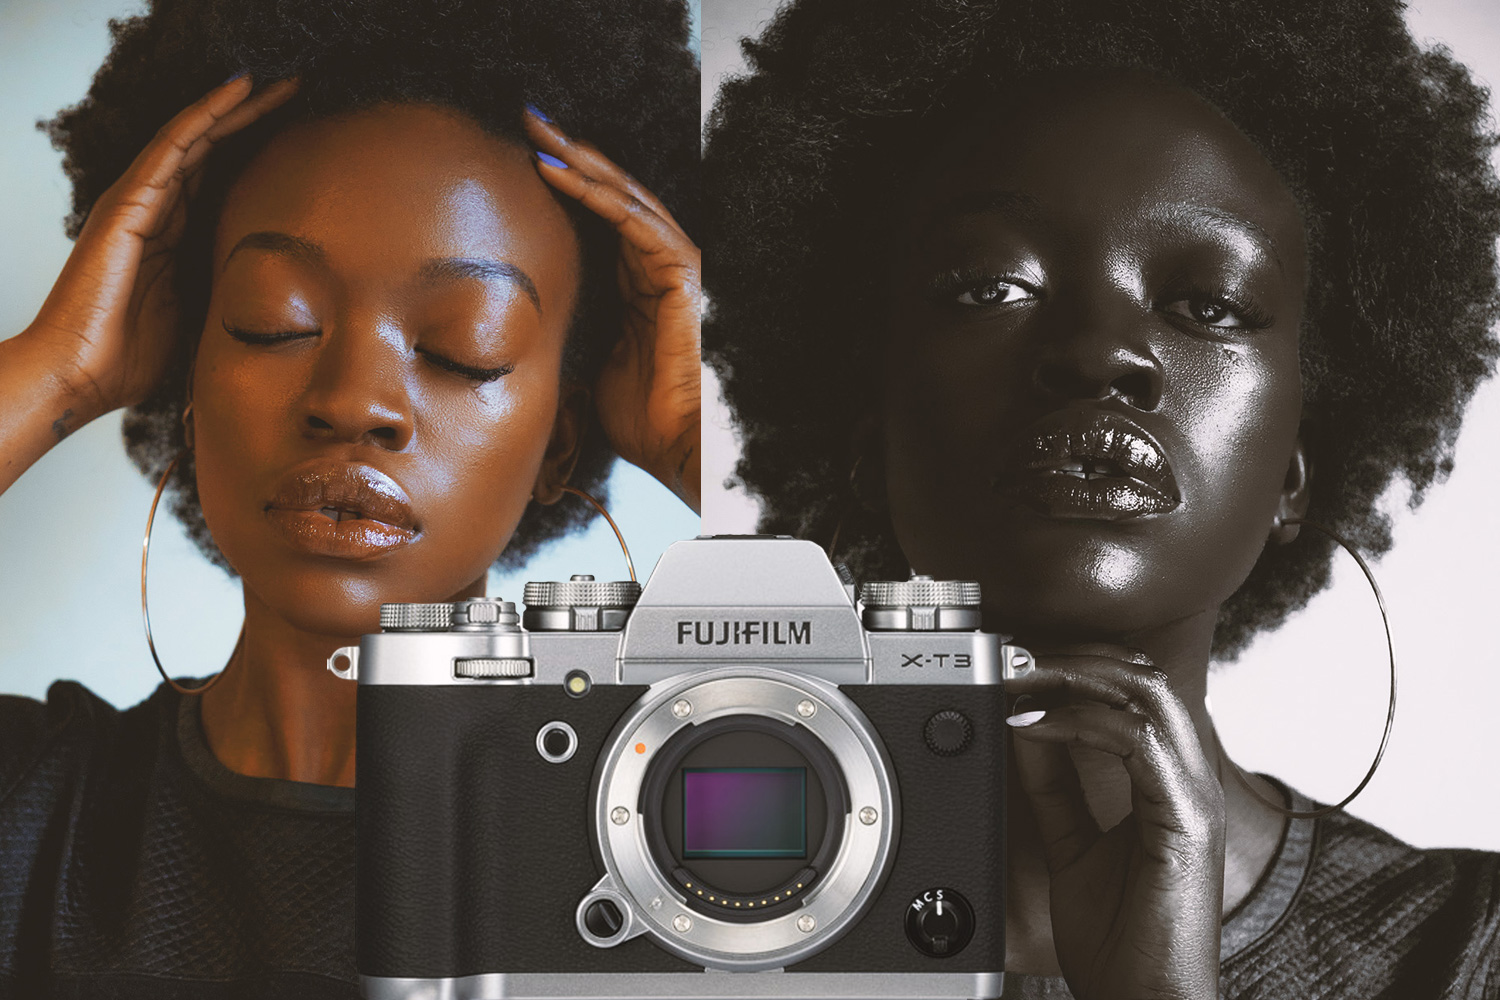 Fuji XT3 portrait of black woman model